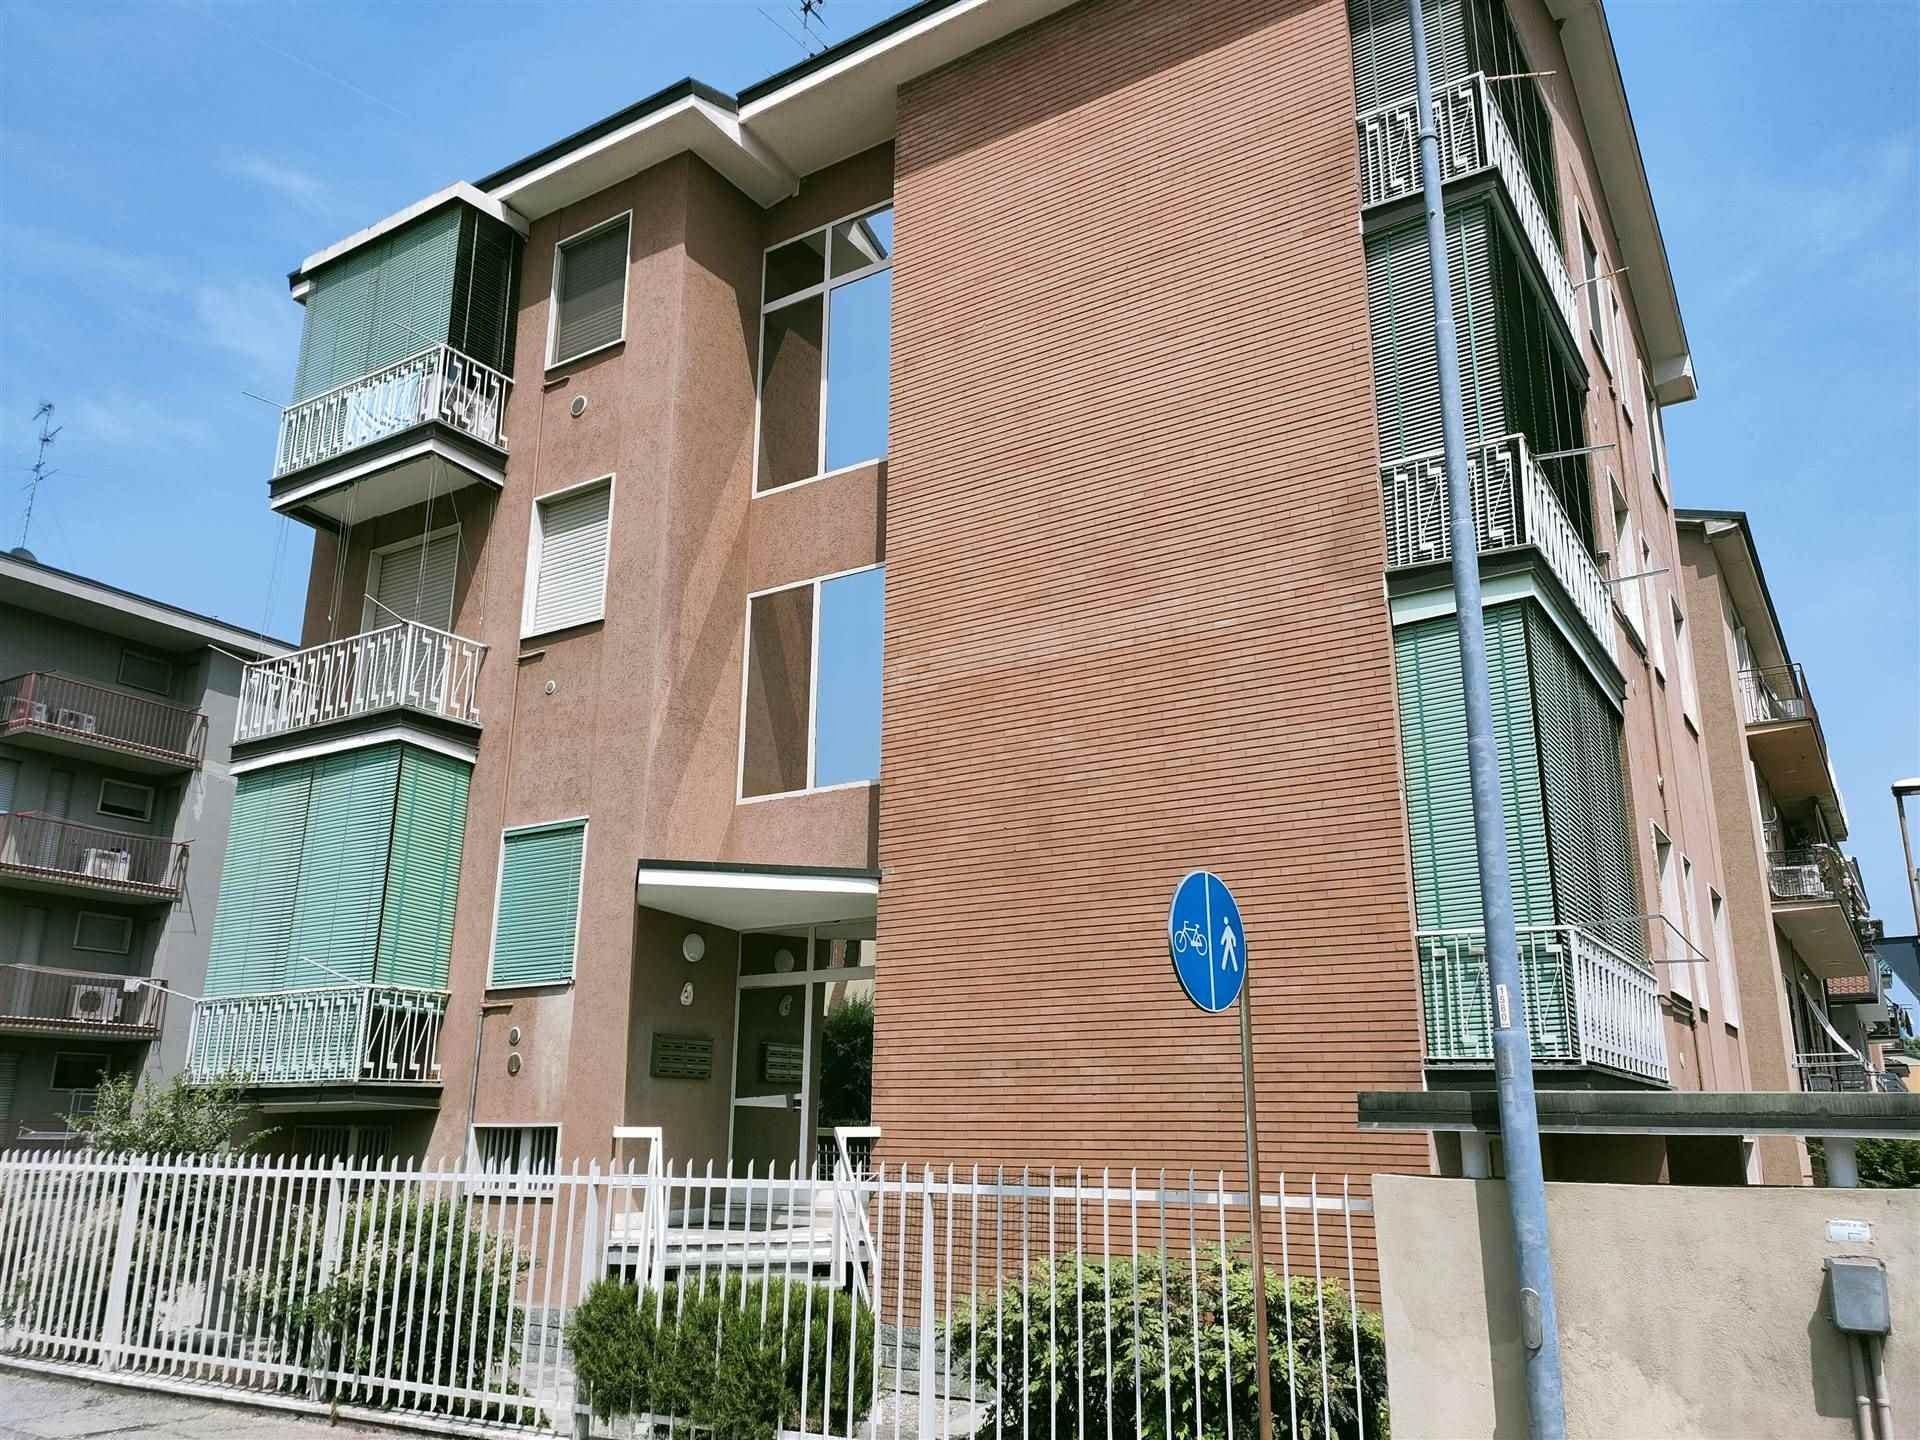 LODICITTA, LODI, Apartment for sale, Habitable, Heating Individual heating system, Energetic class: G, Epi: 234,96 kwh/m2 year, placed at 1° on 3,